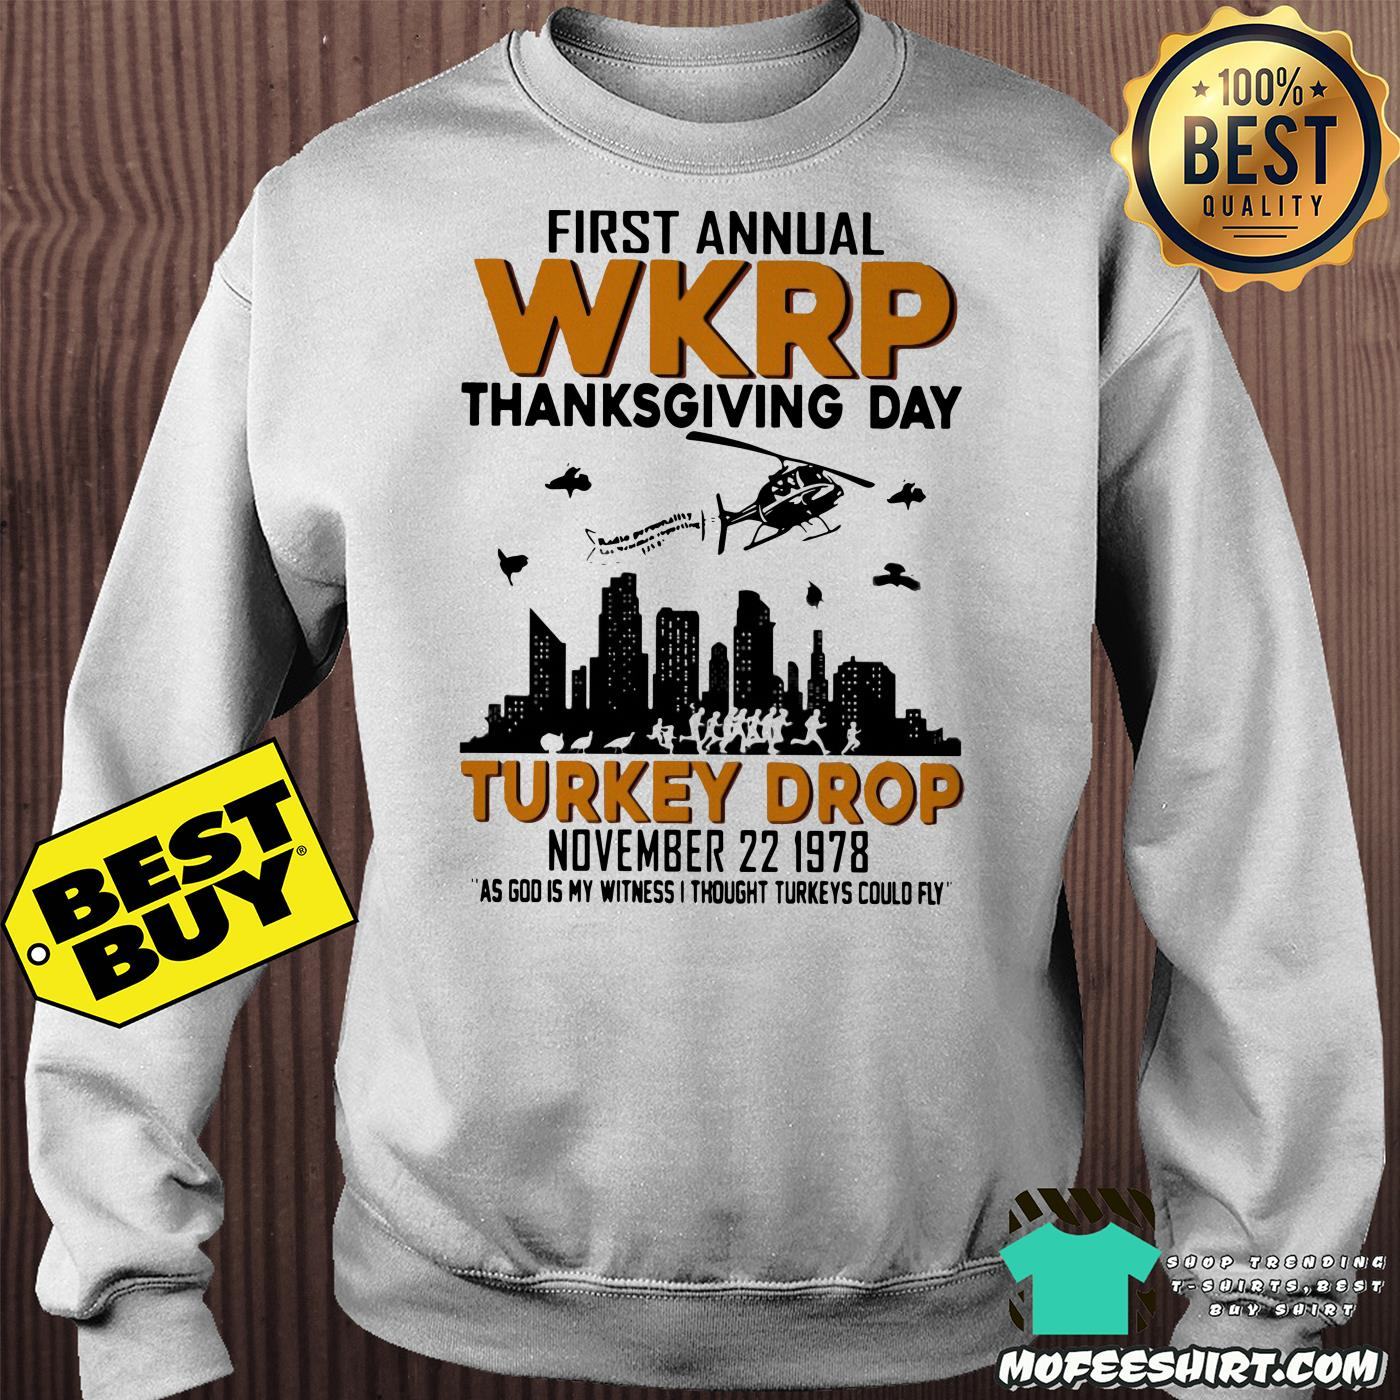 first annual wkrp thanksgiving day turkey drop november 22 1978 sweatshirt - First Annual Wkrp Thanksgiving Day Turkey Drop November 22 1978 Shirt